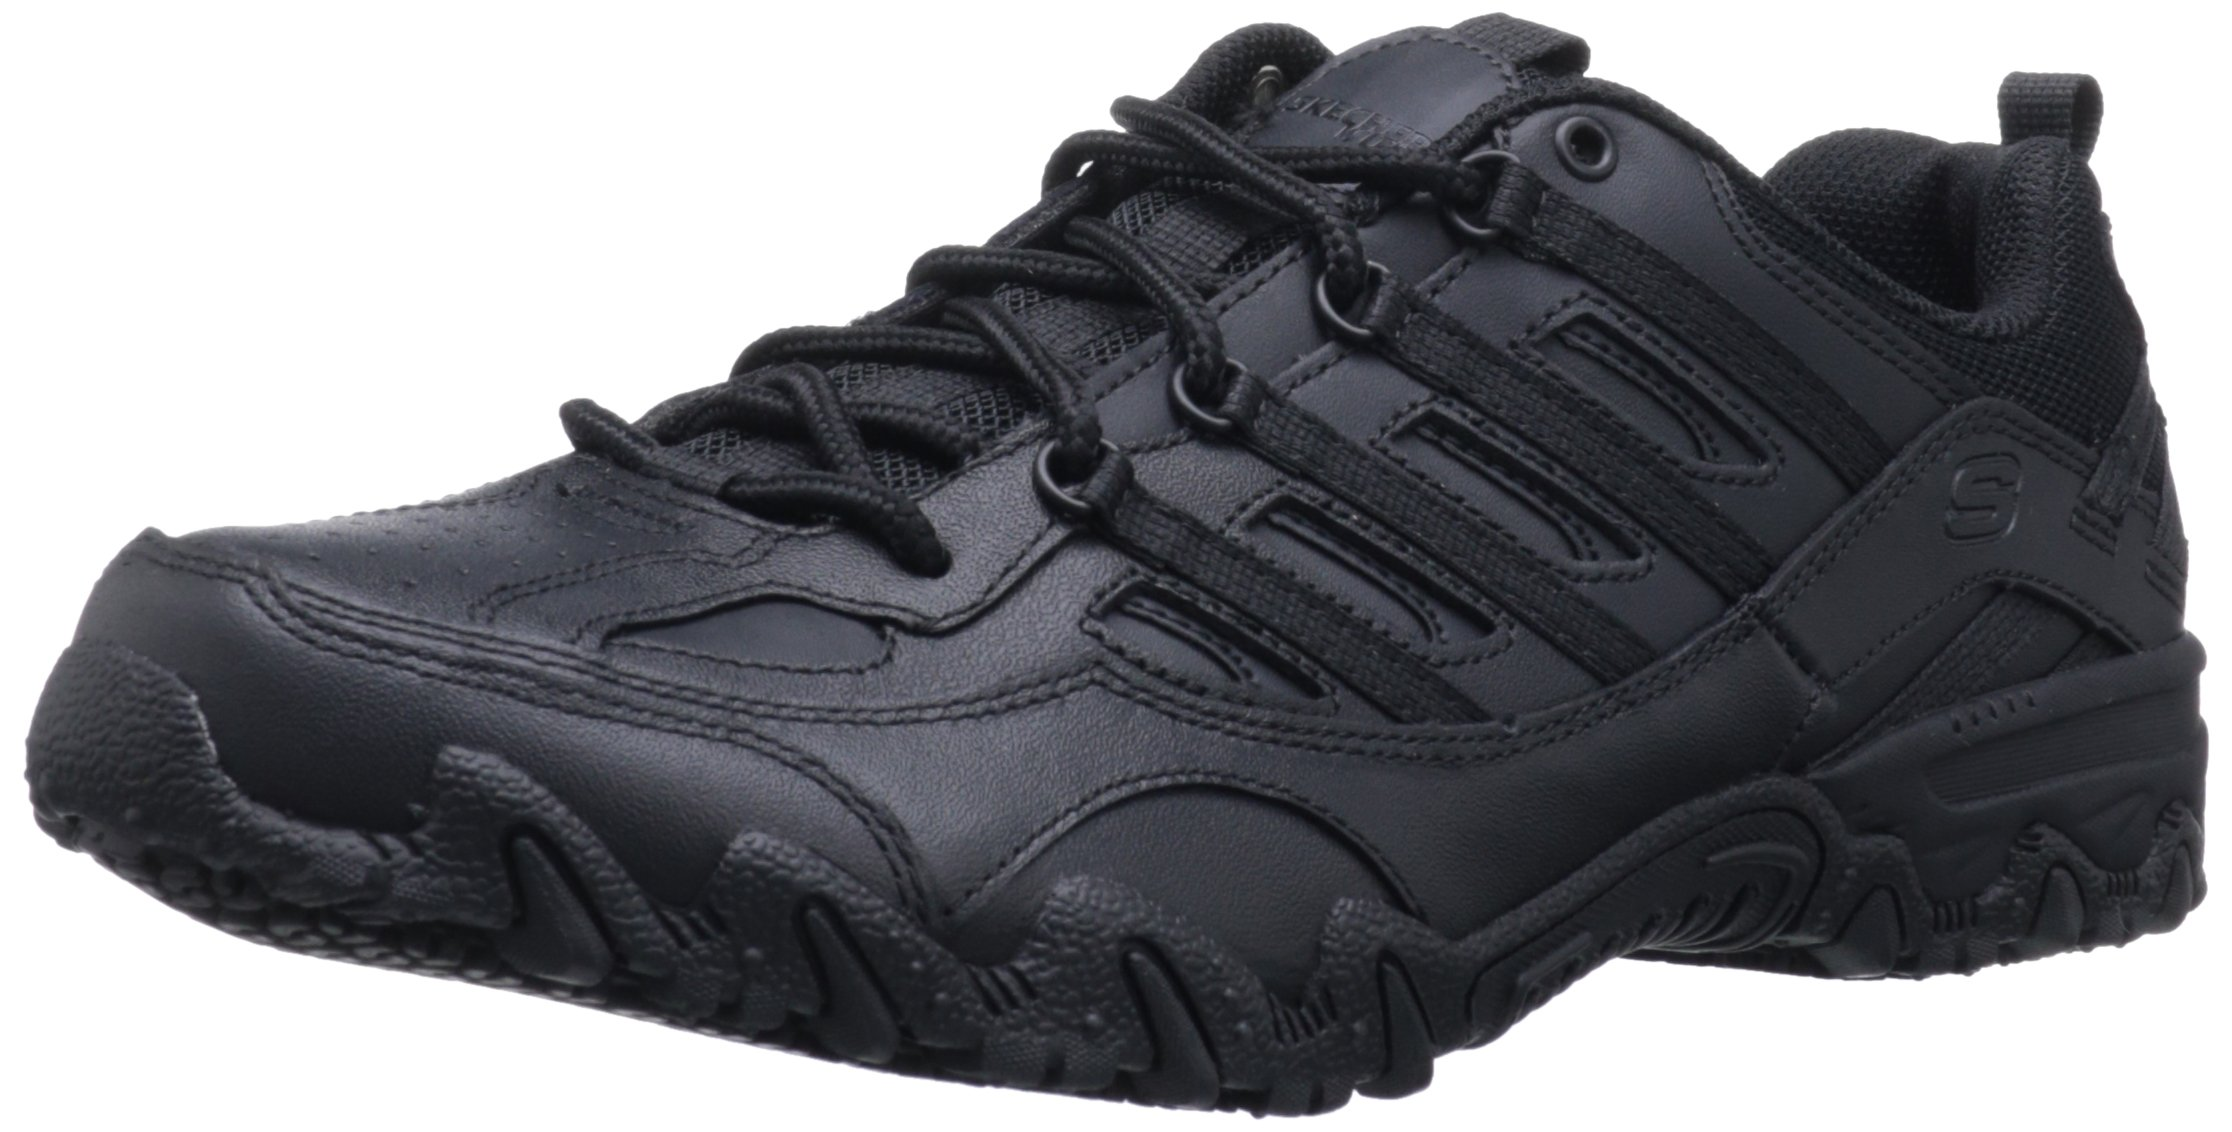 Skechers for Work Women's Compulsions Chant Lace-Up Work Shoe, Black, 6.5 XW US